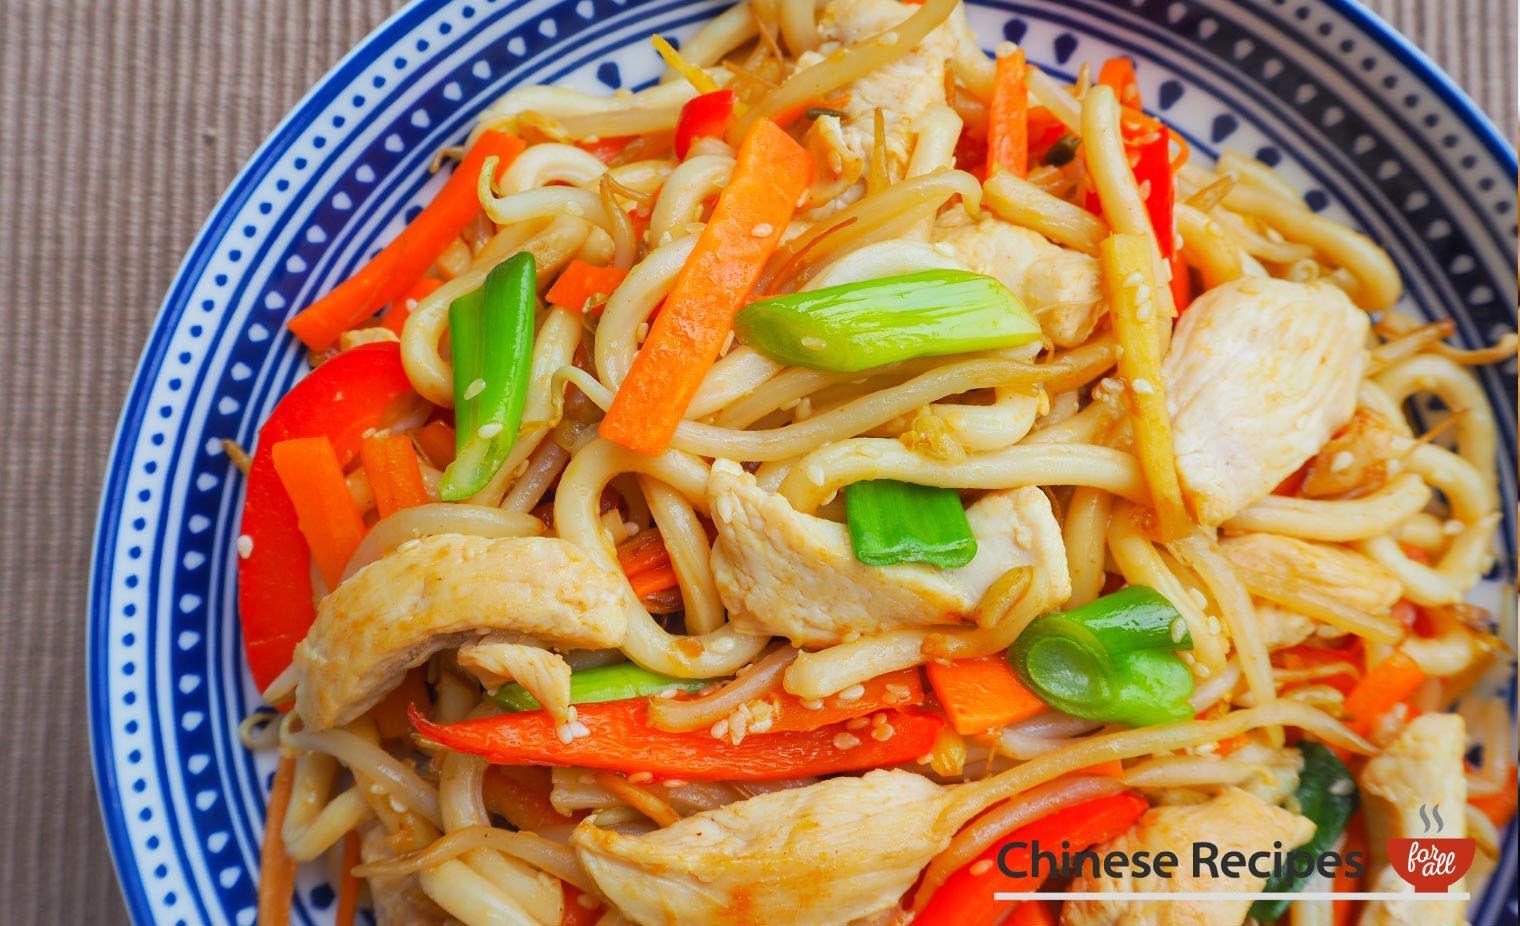 Chicken Udon Noodles with Ginger and Sesame Seeds